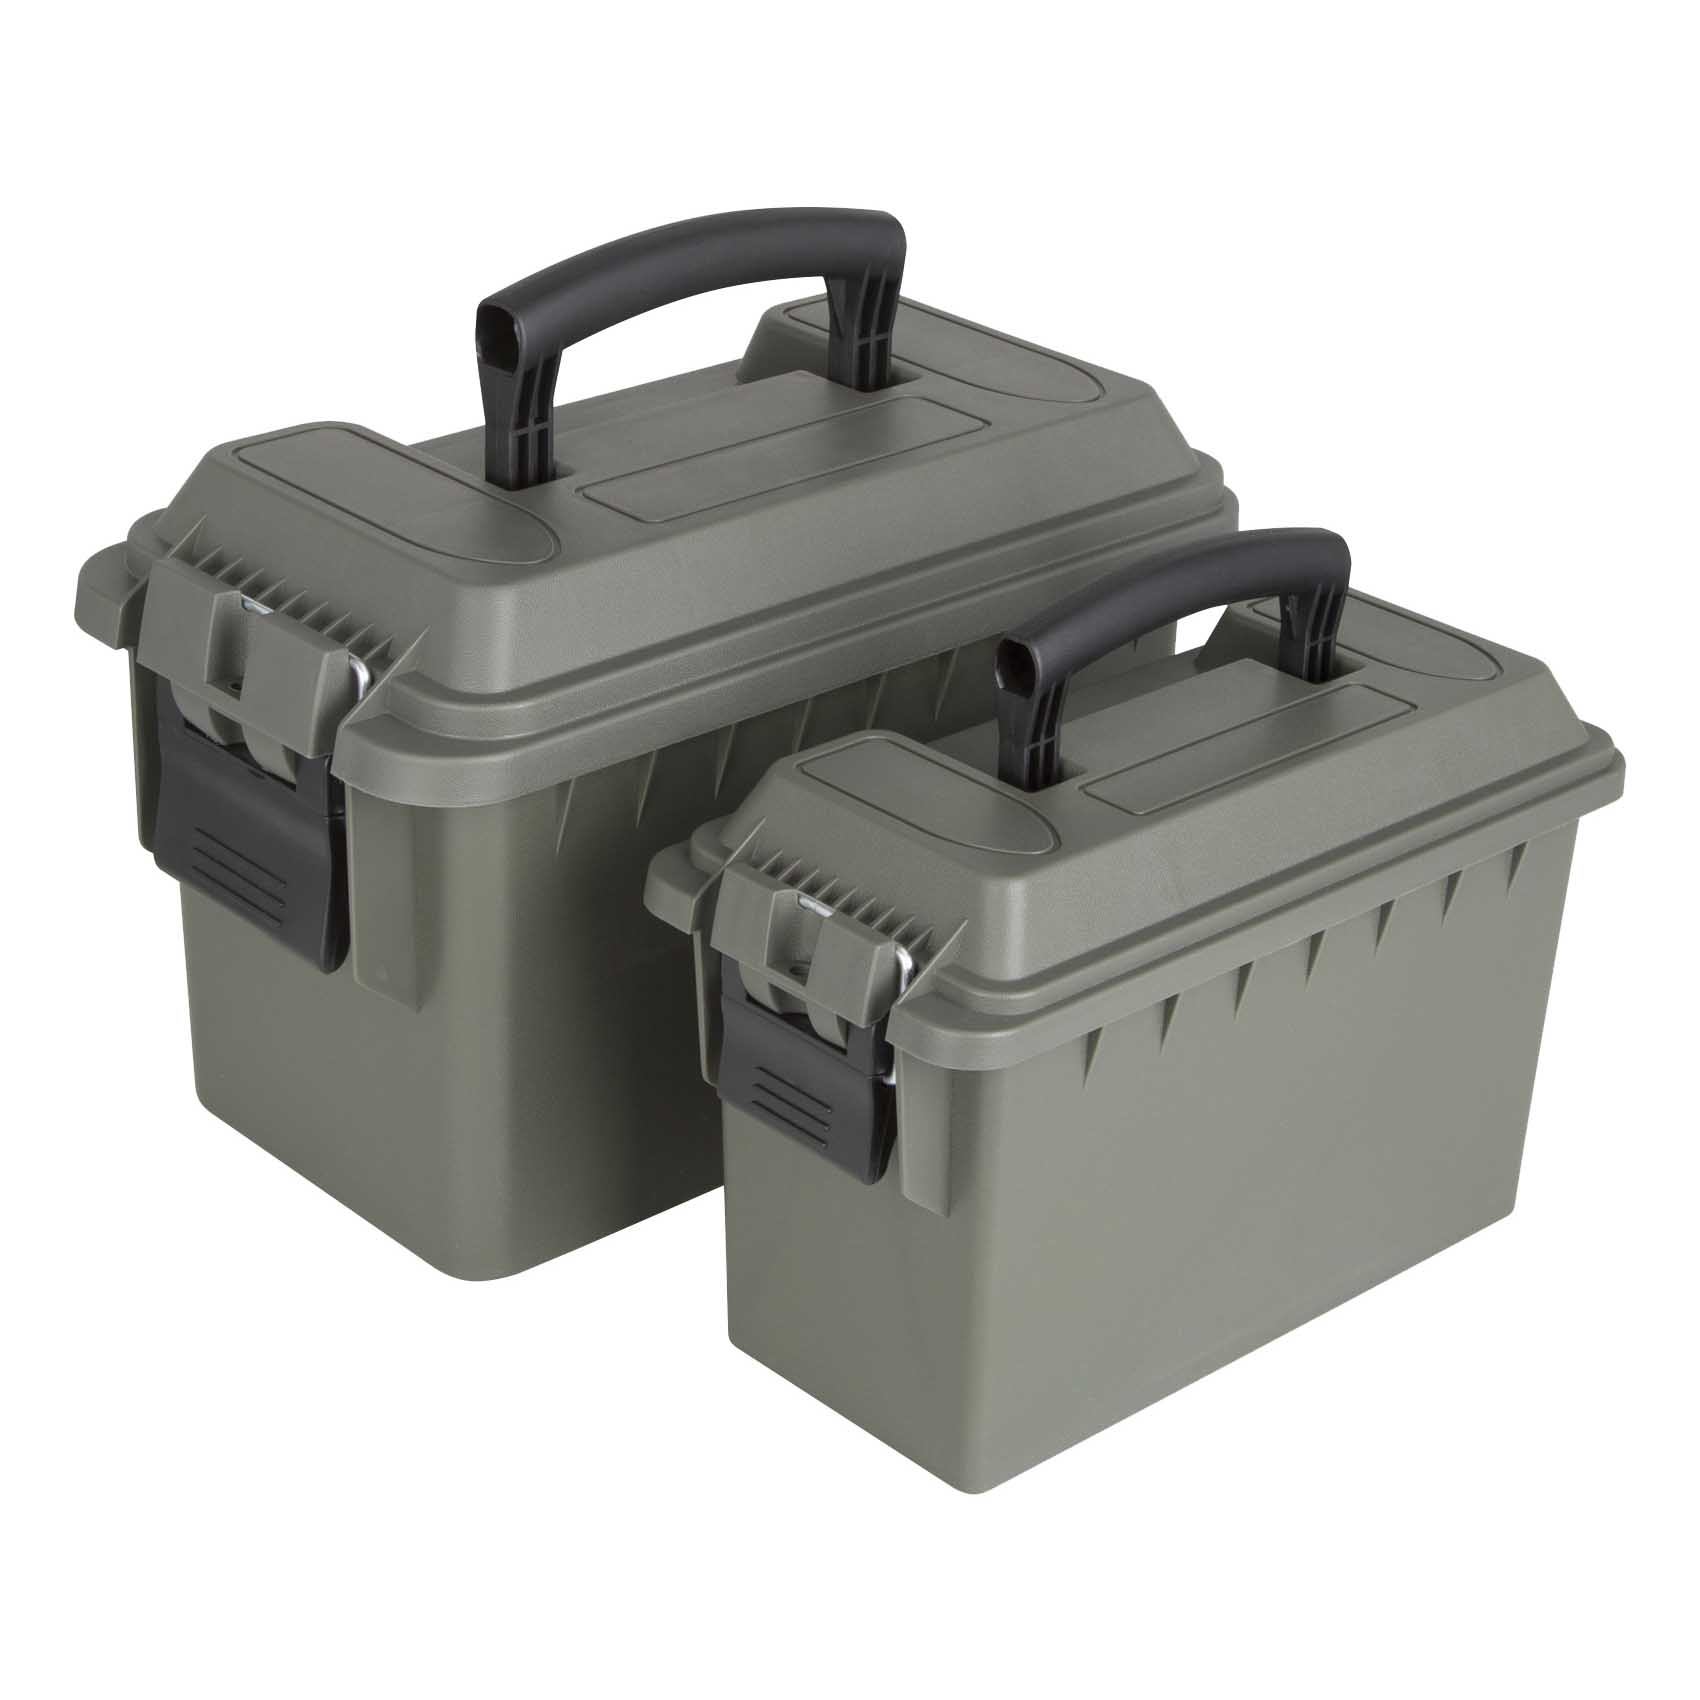 Picture of Magnum 10125 Tactical Storage Box, 13-3/4 in 50 Caliber, 11-1/2 in 30 Caliber L, 30 Caliber, 50 Caliber Capacity